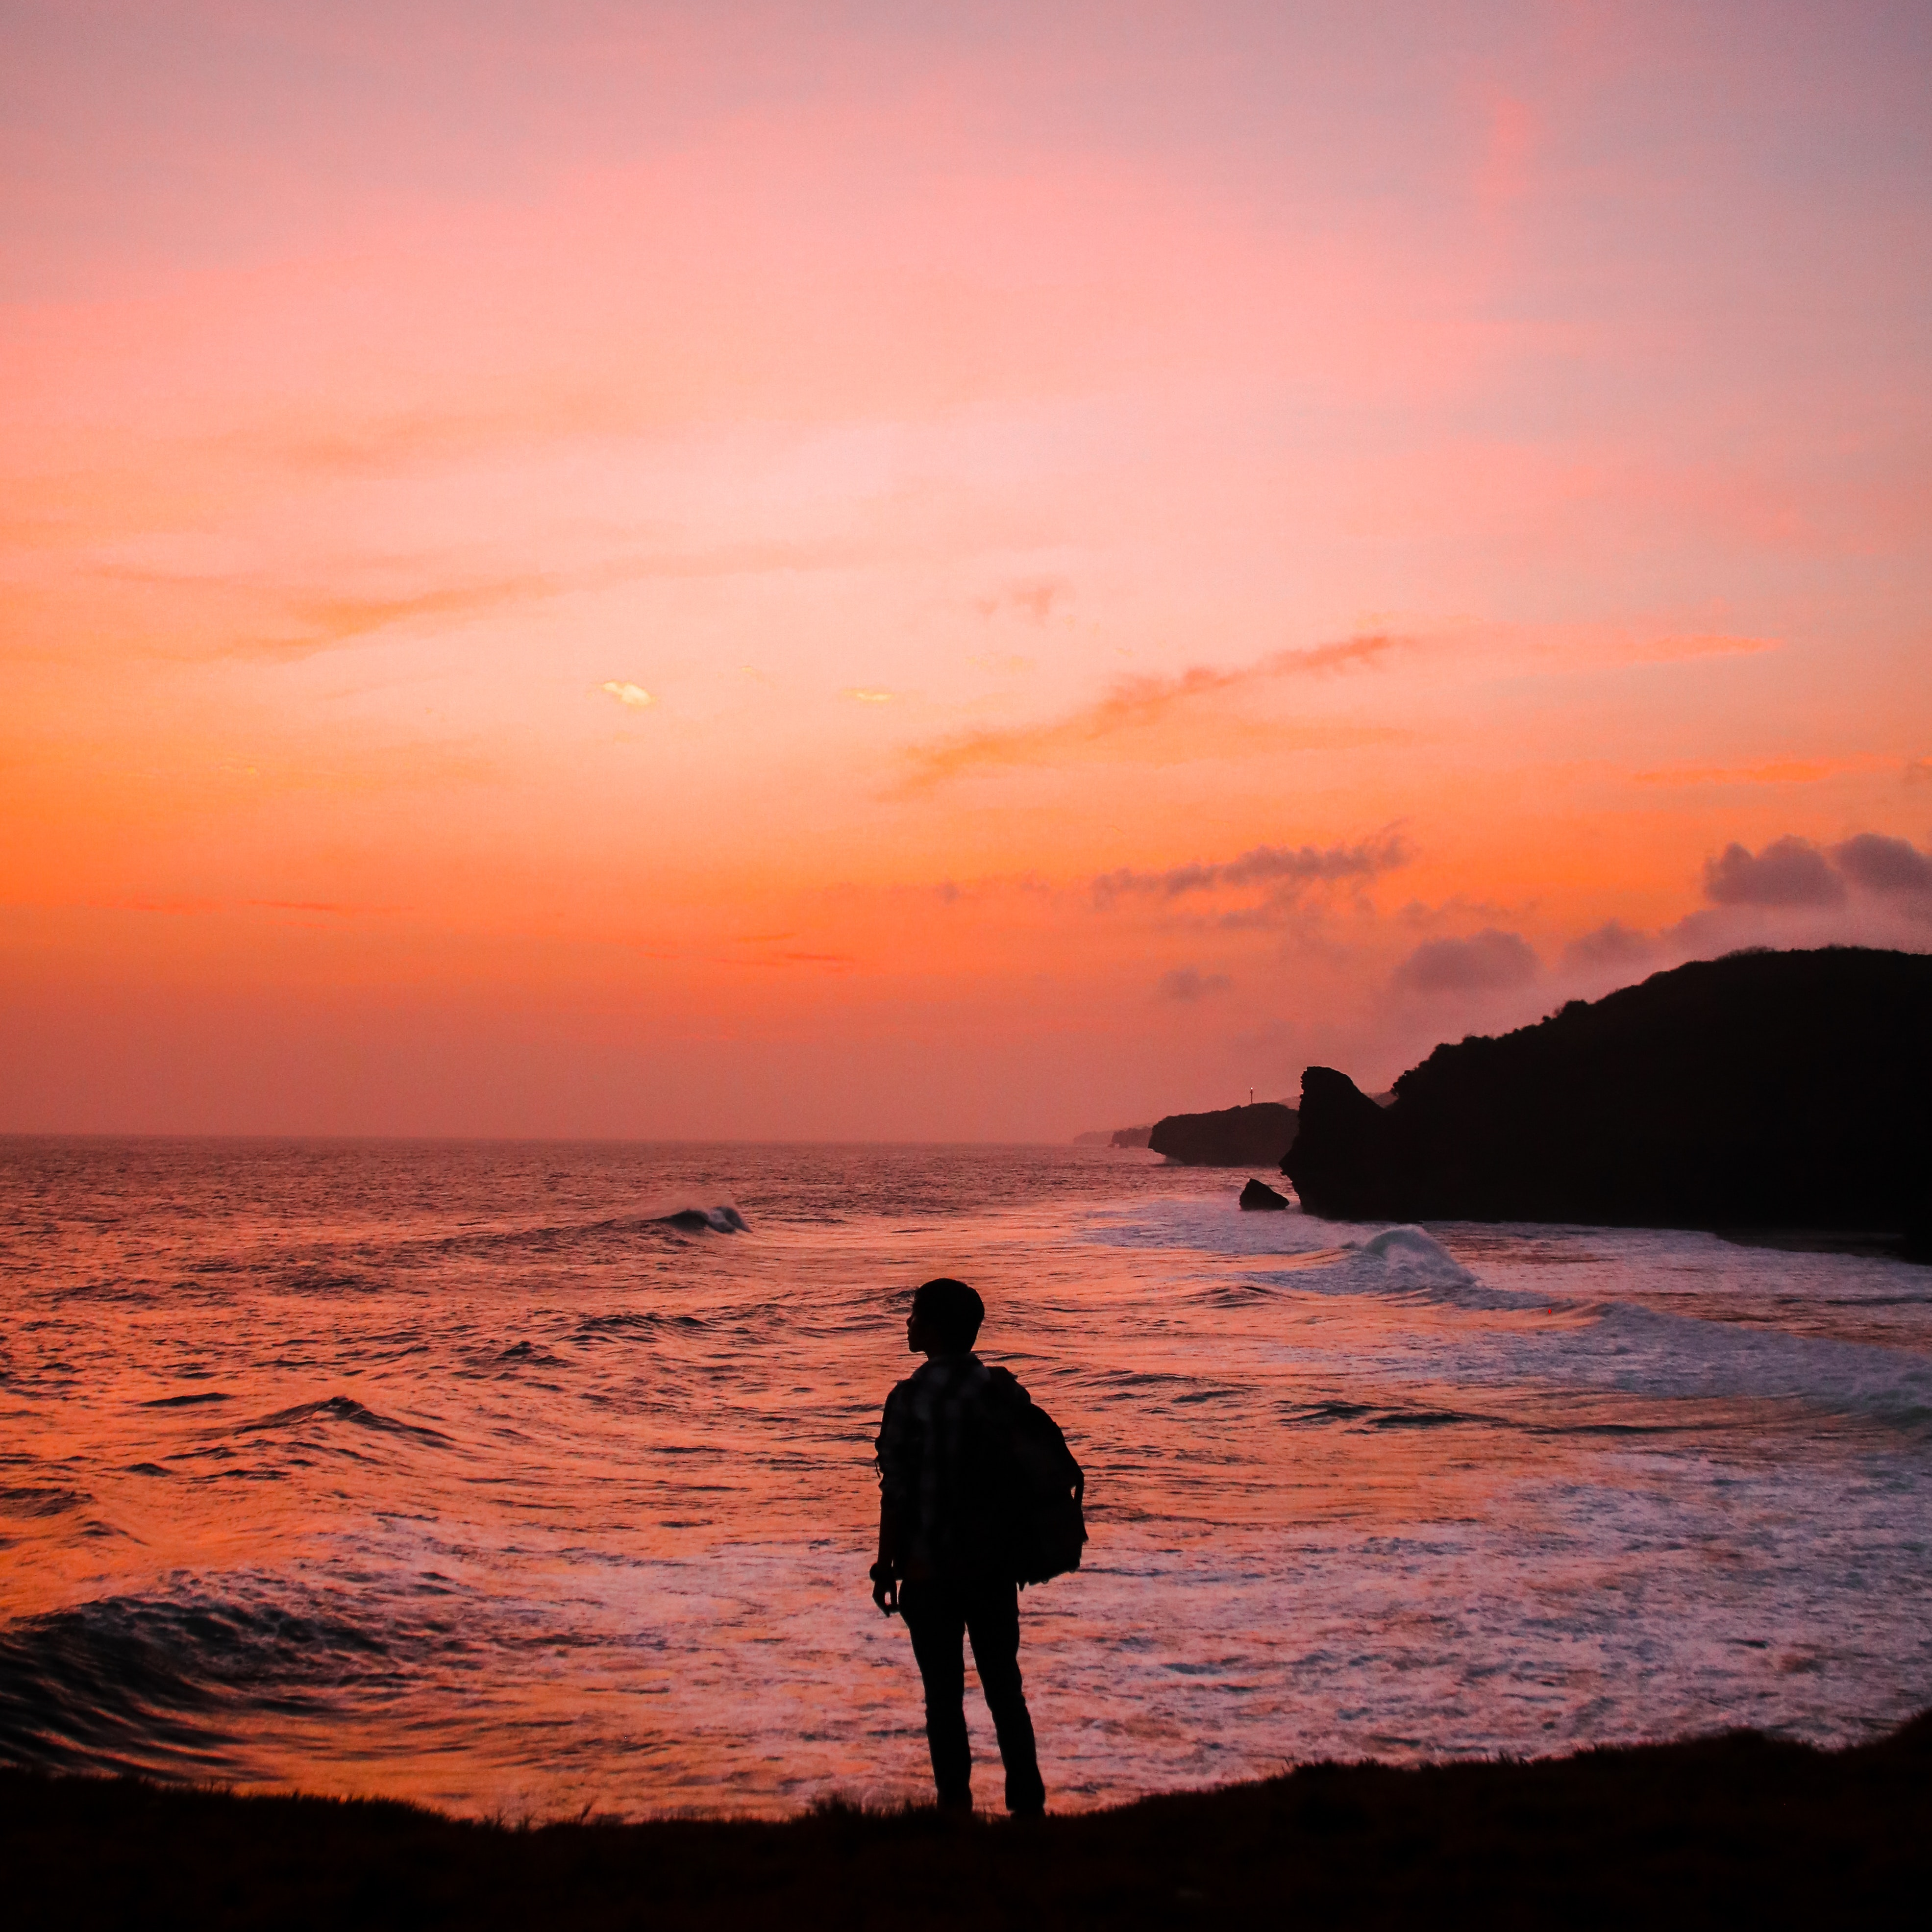 silhouette-photo-of-man-with-backpack-standing-in-seashore-848573